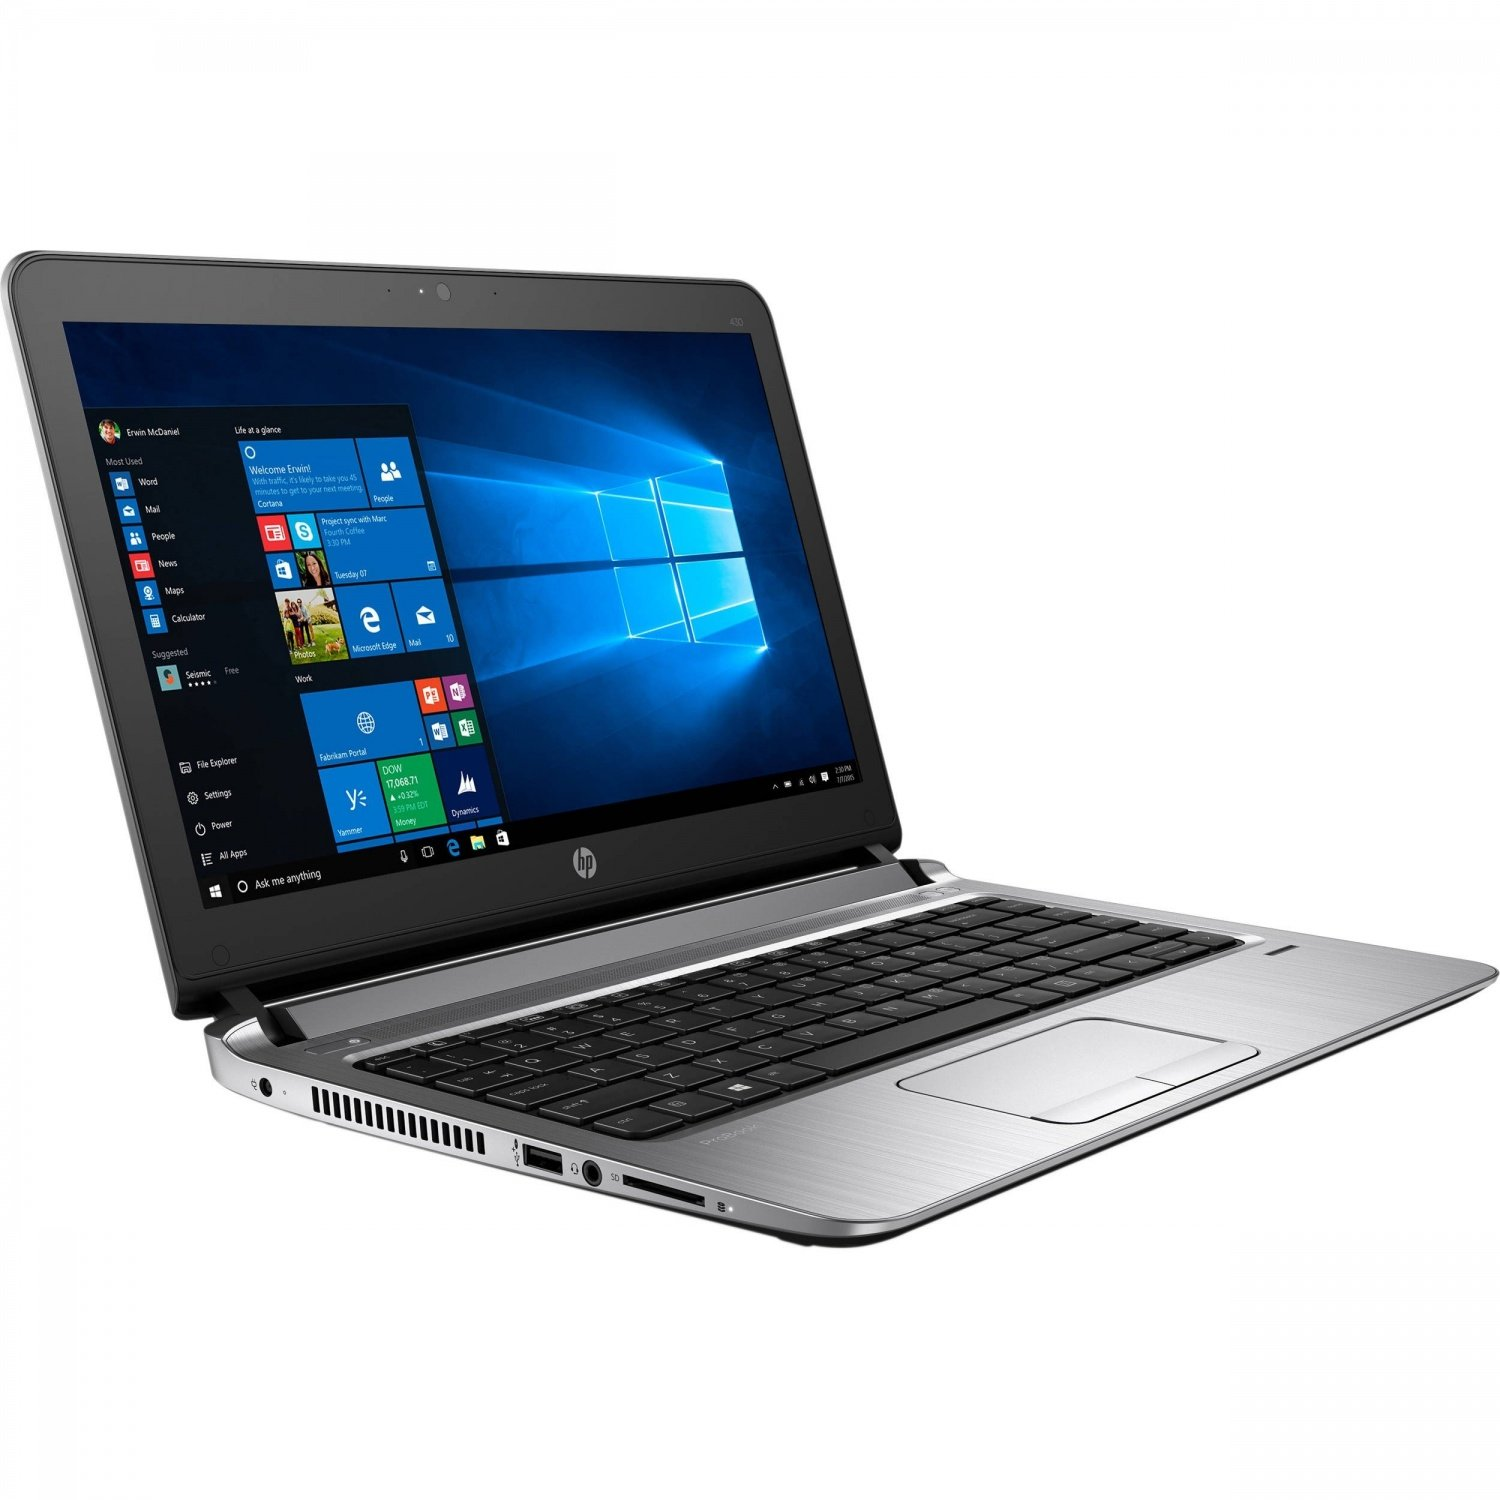 HP PROBOOK 430 G3 DOWNLOAD DRIVERS